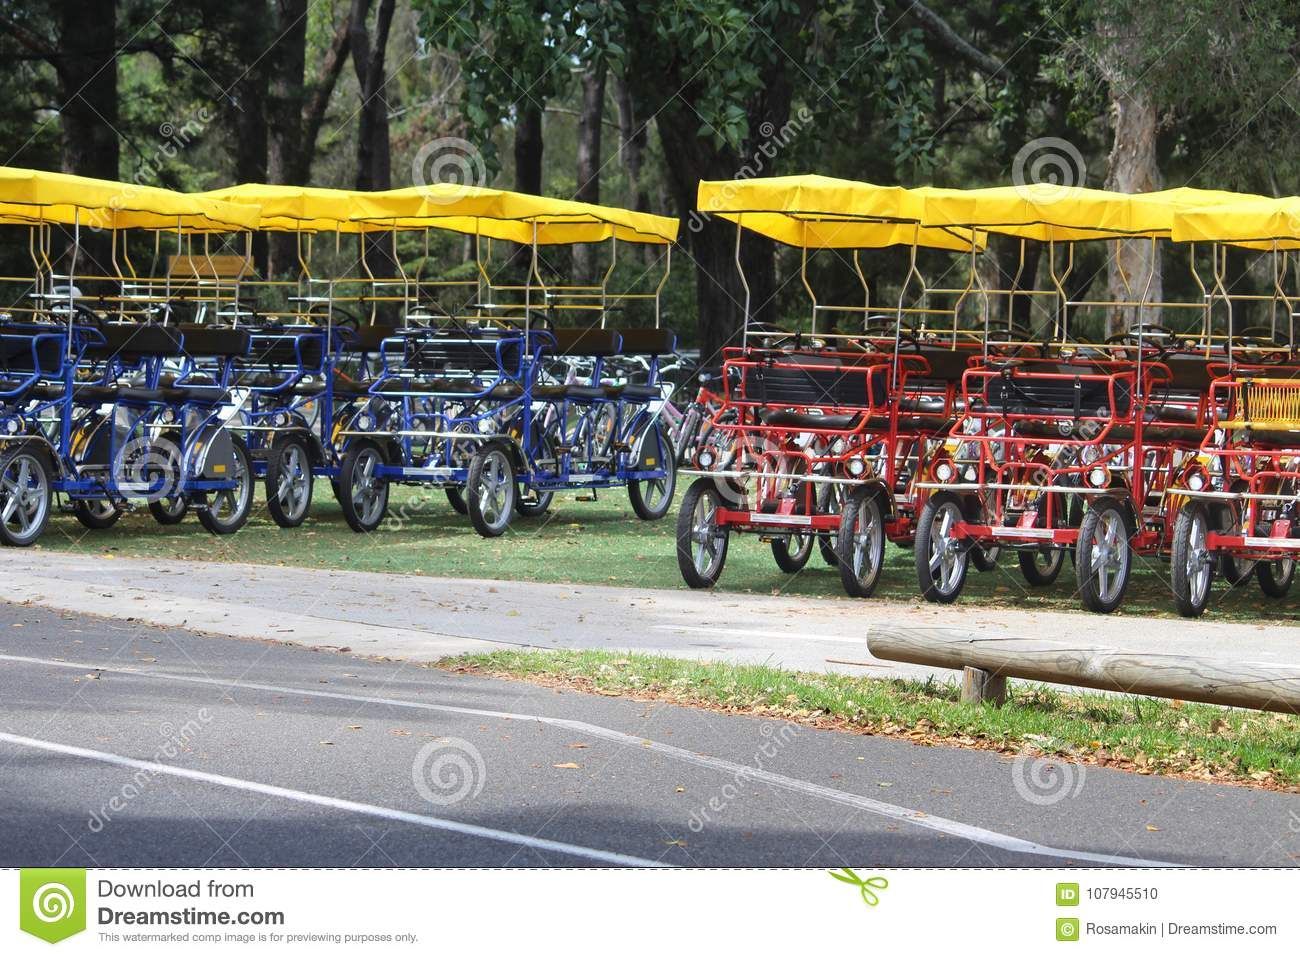 Adult Hire Pedal Cars Stock Photo Image Of Lifestyle 107945510